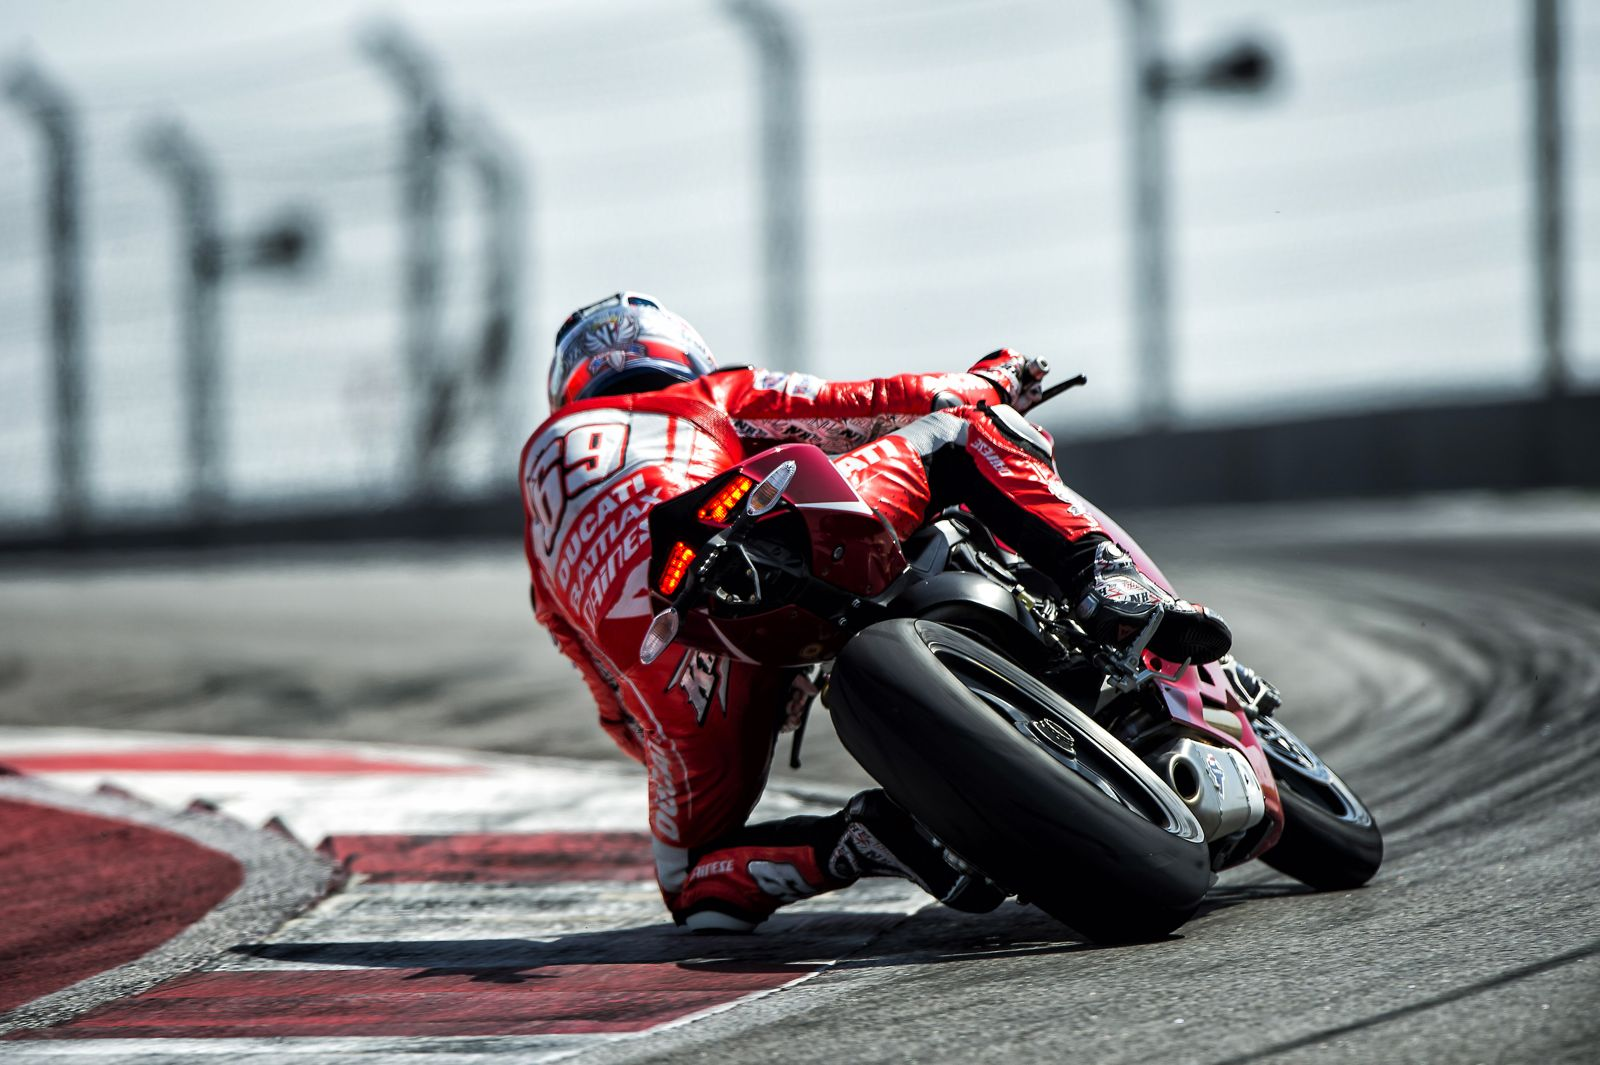 Superbike Girl Wallpaper 2013 Ducati 1199 Panigale R Official Pictures Autoevolution